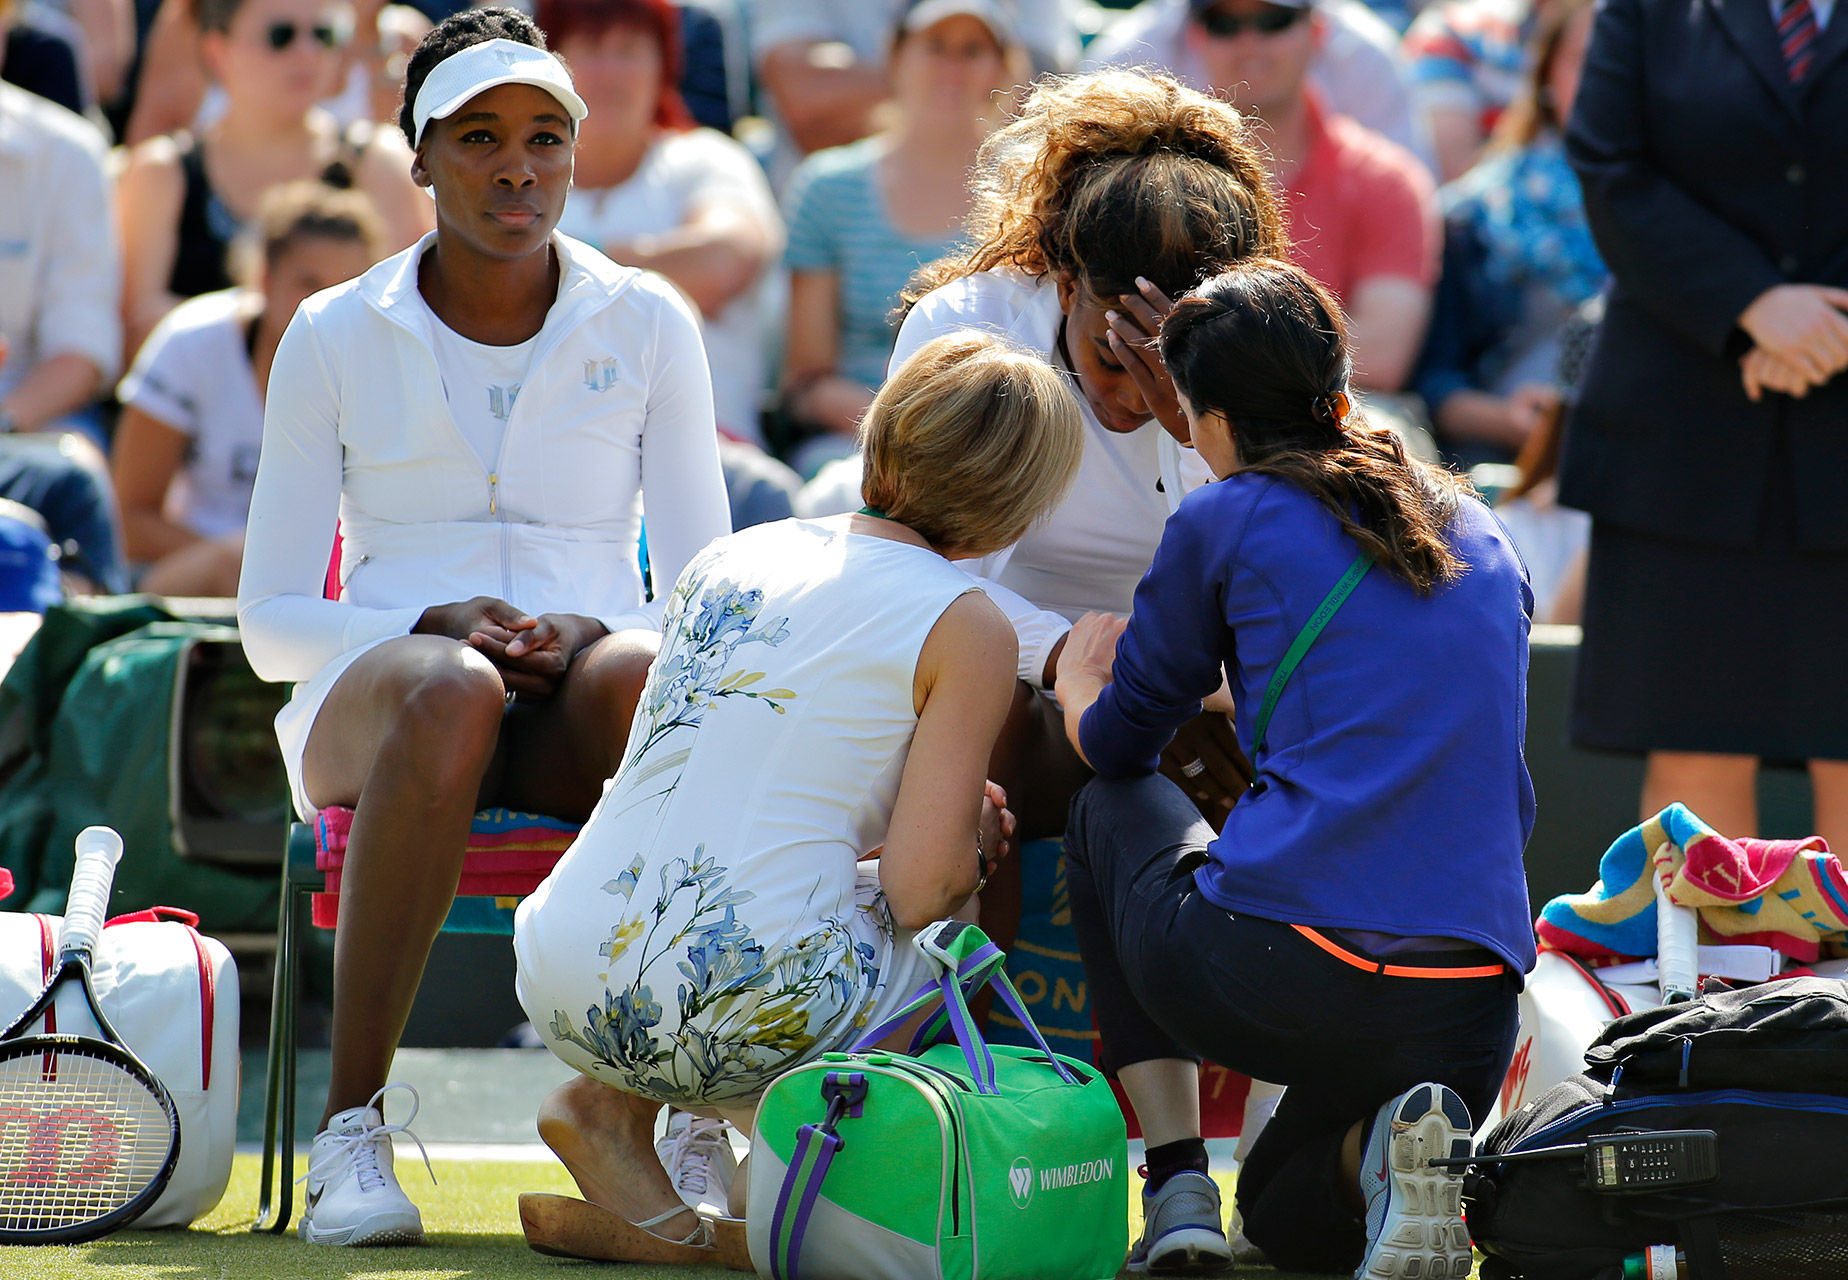 Wimbledon officials talk to Serena Williams as her sister Venus Williams sits in her chair during their women's doubles match against Kristina Barrois of Germany and Stefanie Voegele of Switzerland. Serena was forced to retire with a viral illness.